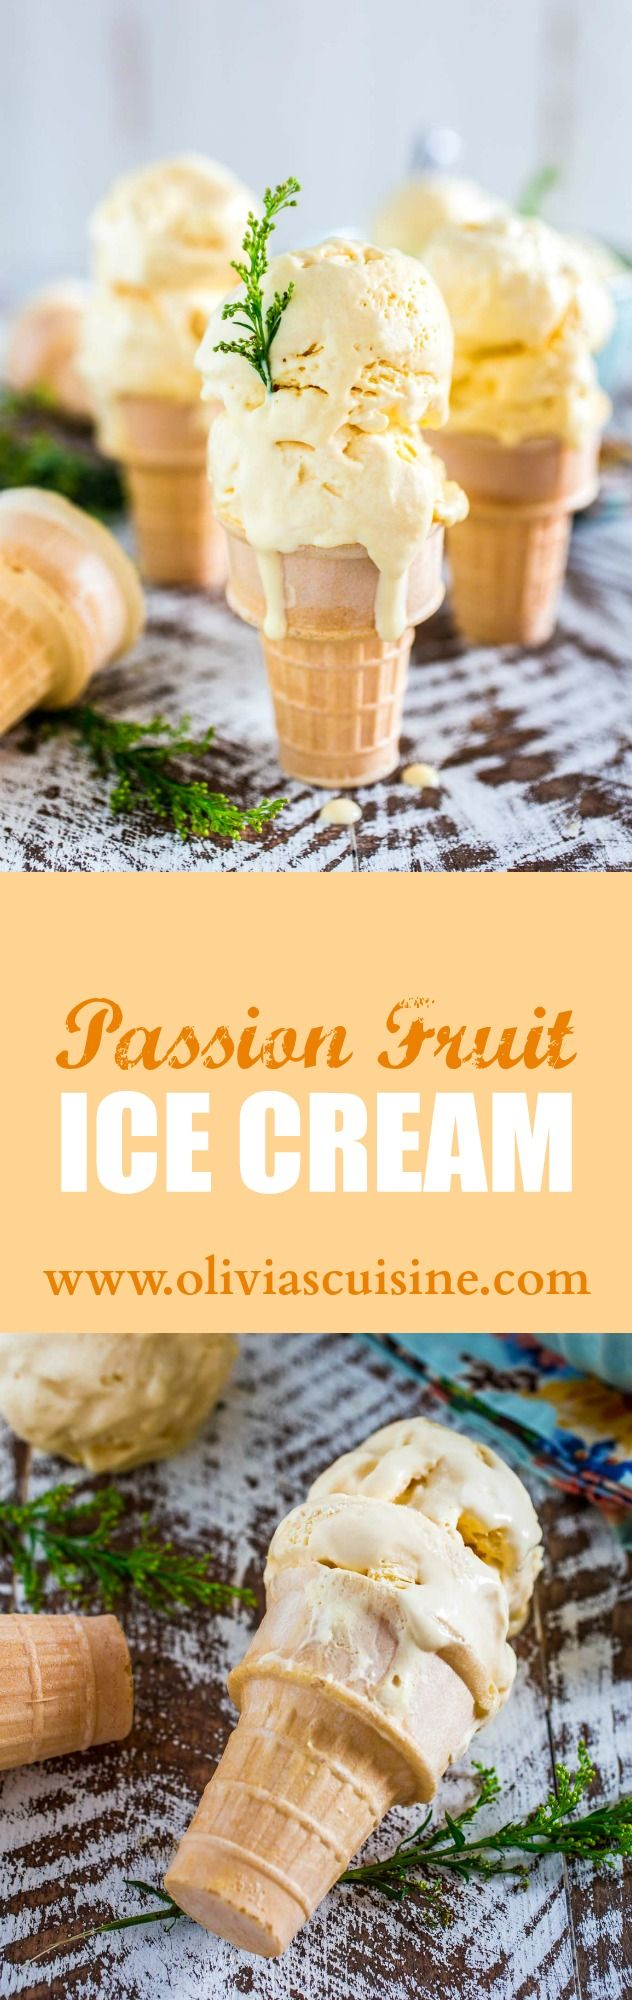 Vanilla Ice Cream With Fresh No-Cook Blackberry Sauce Recipe ...